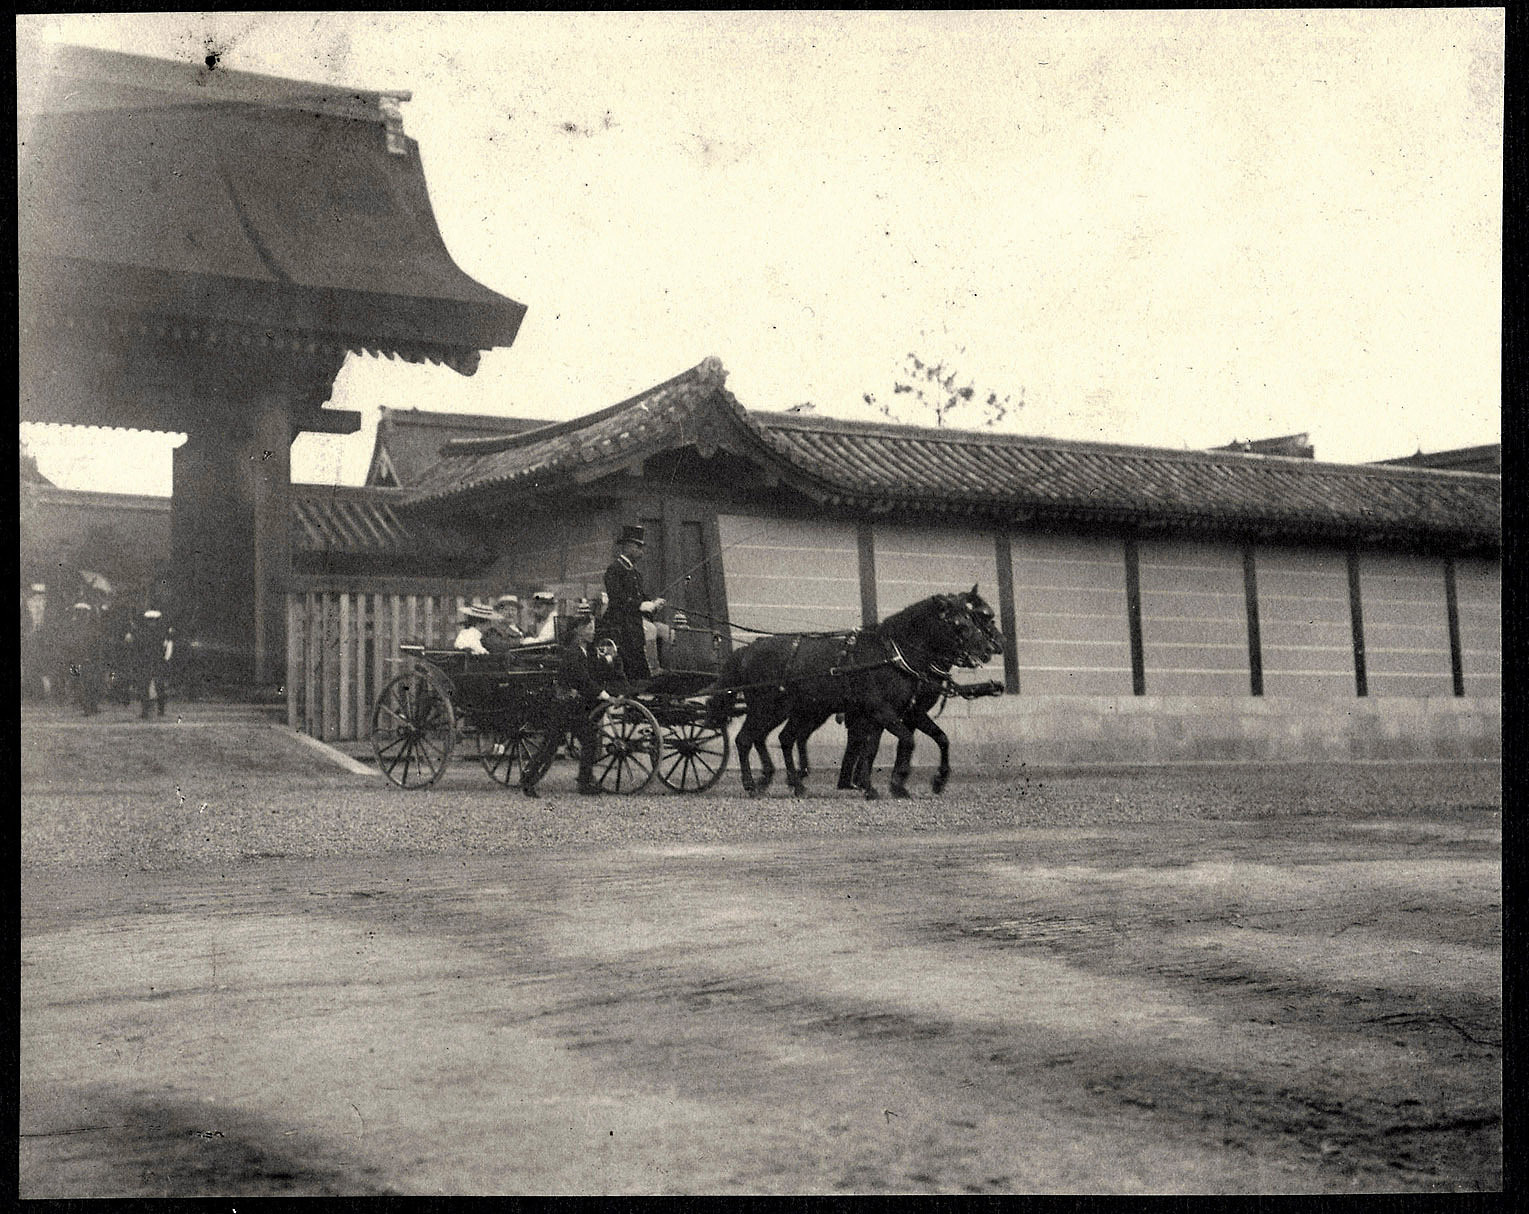 William H. Taft, Alice Roosevelt, and Nagasaki Michinori in a carriage leaving the Imperial Palace